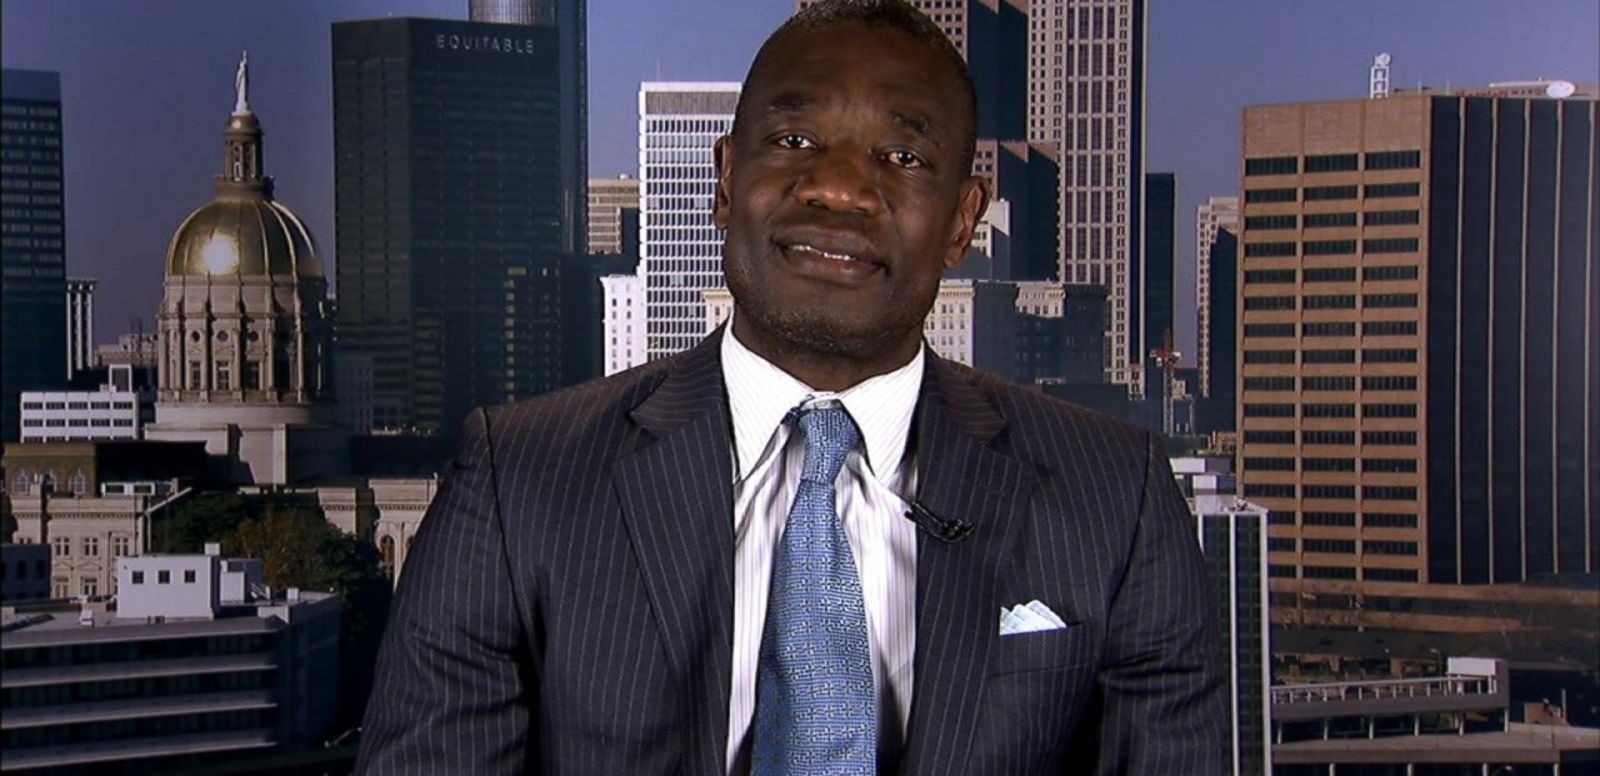 VIDEO: Dikembe Mutombo Describes Scene at Brussels Airport After Bombings